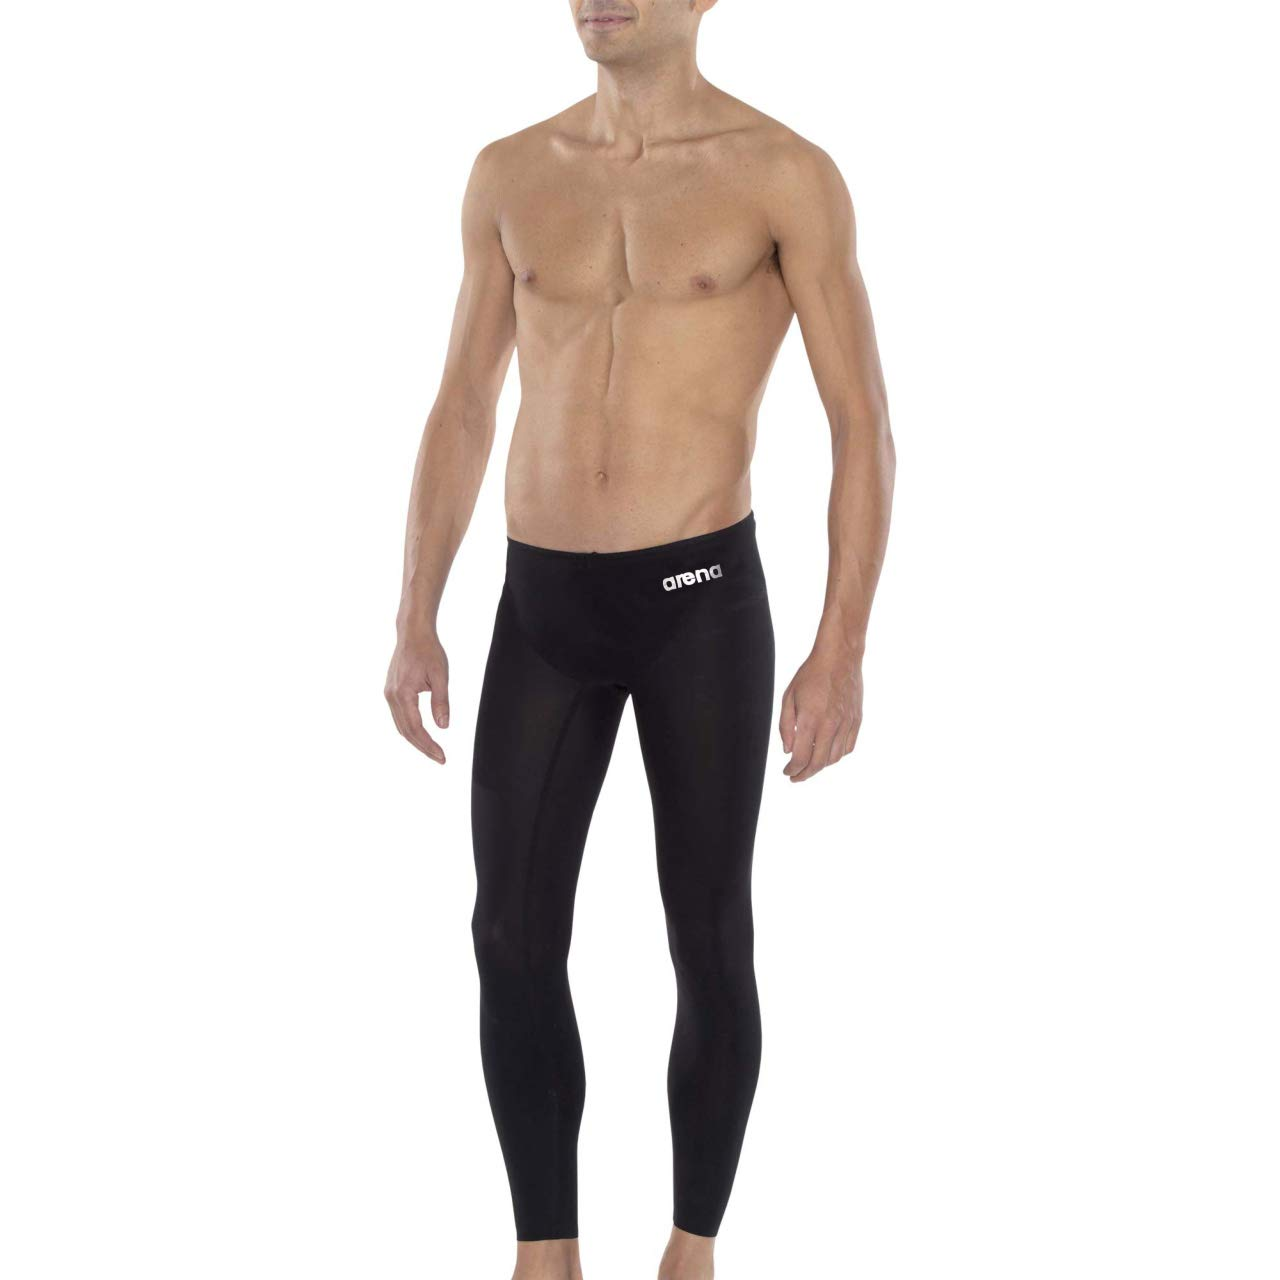 Arena Powerskin R-Evo SL Open Water Pant, Black, 24 by Arena